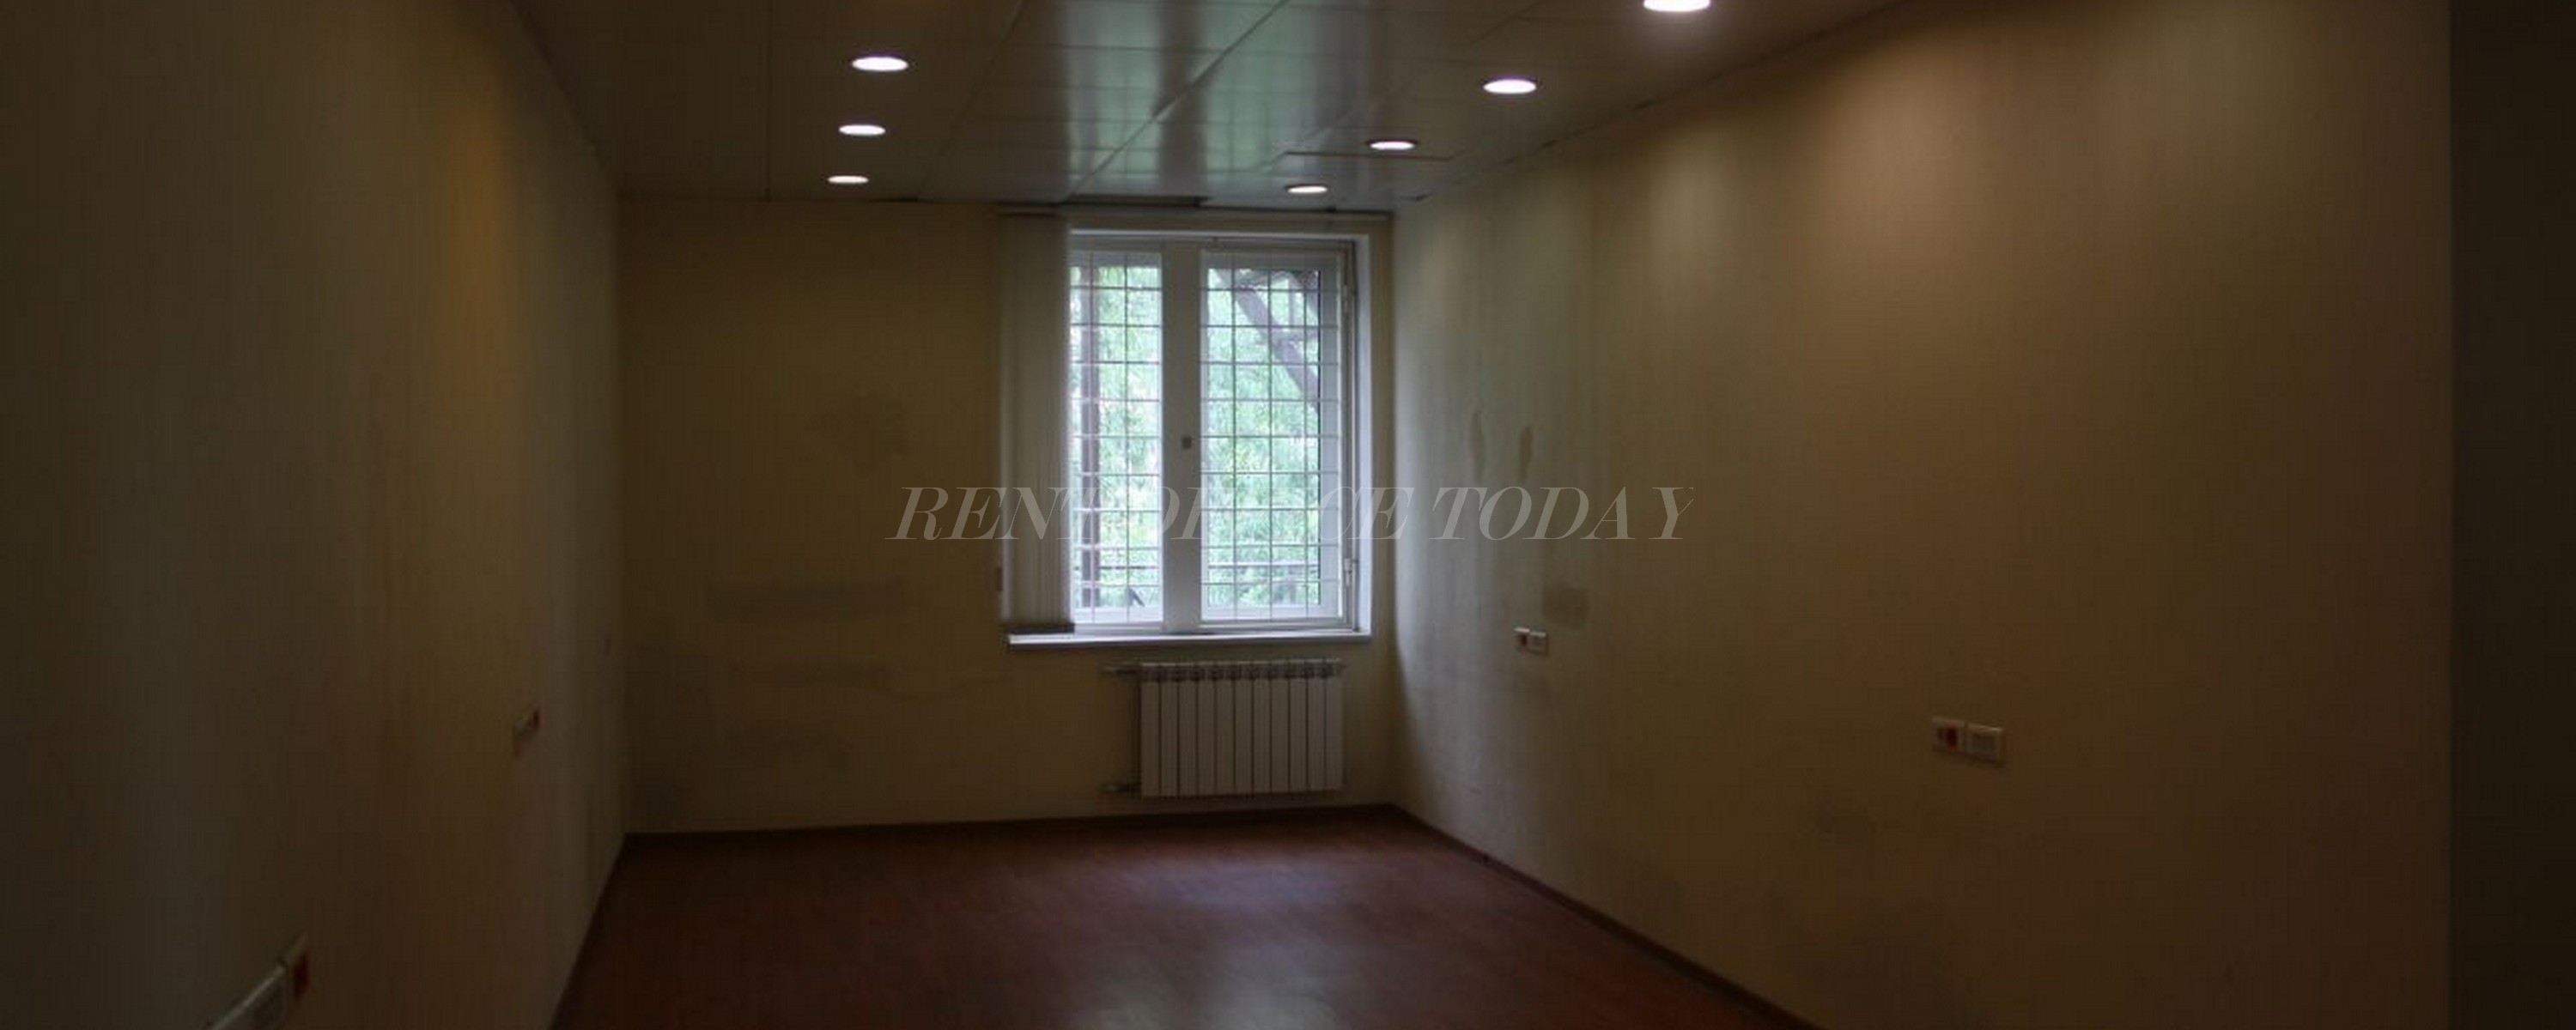 office rent shmitovskiy 18c1-3